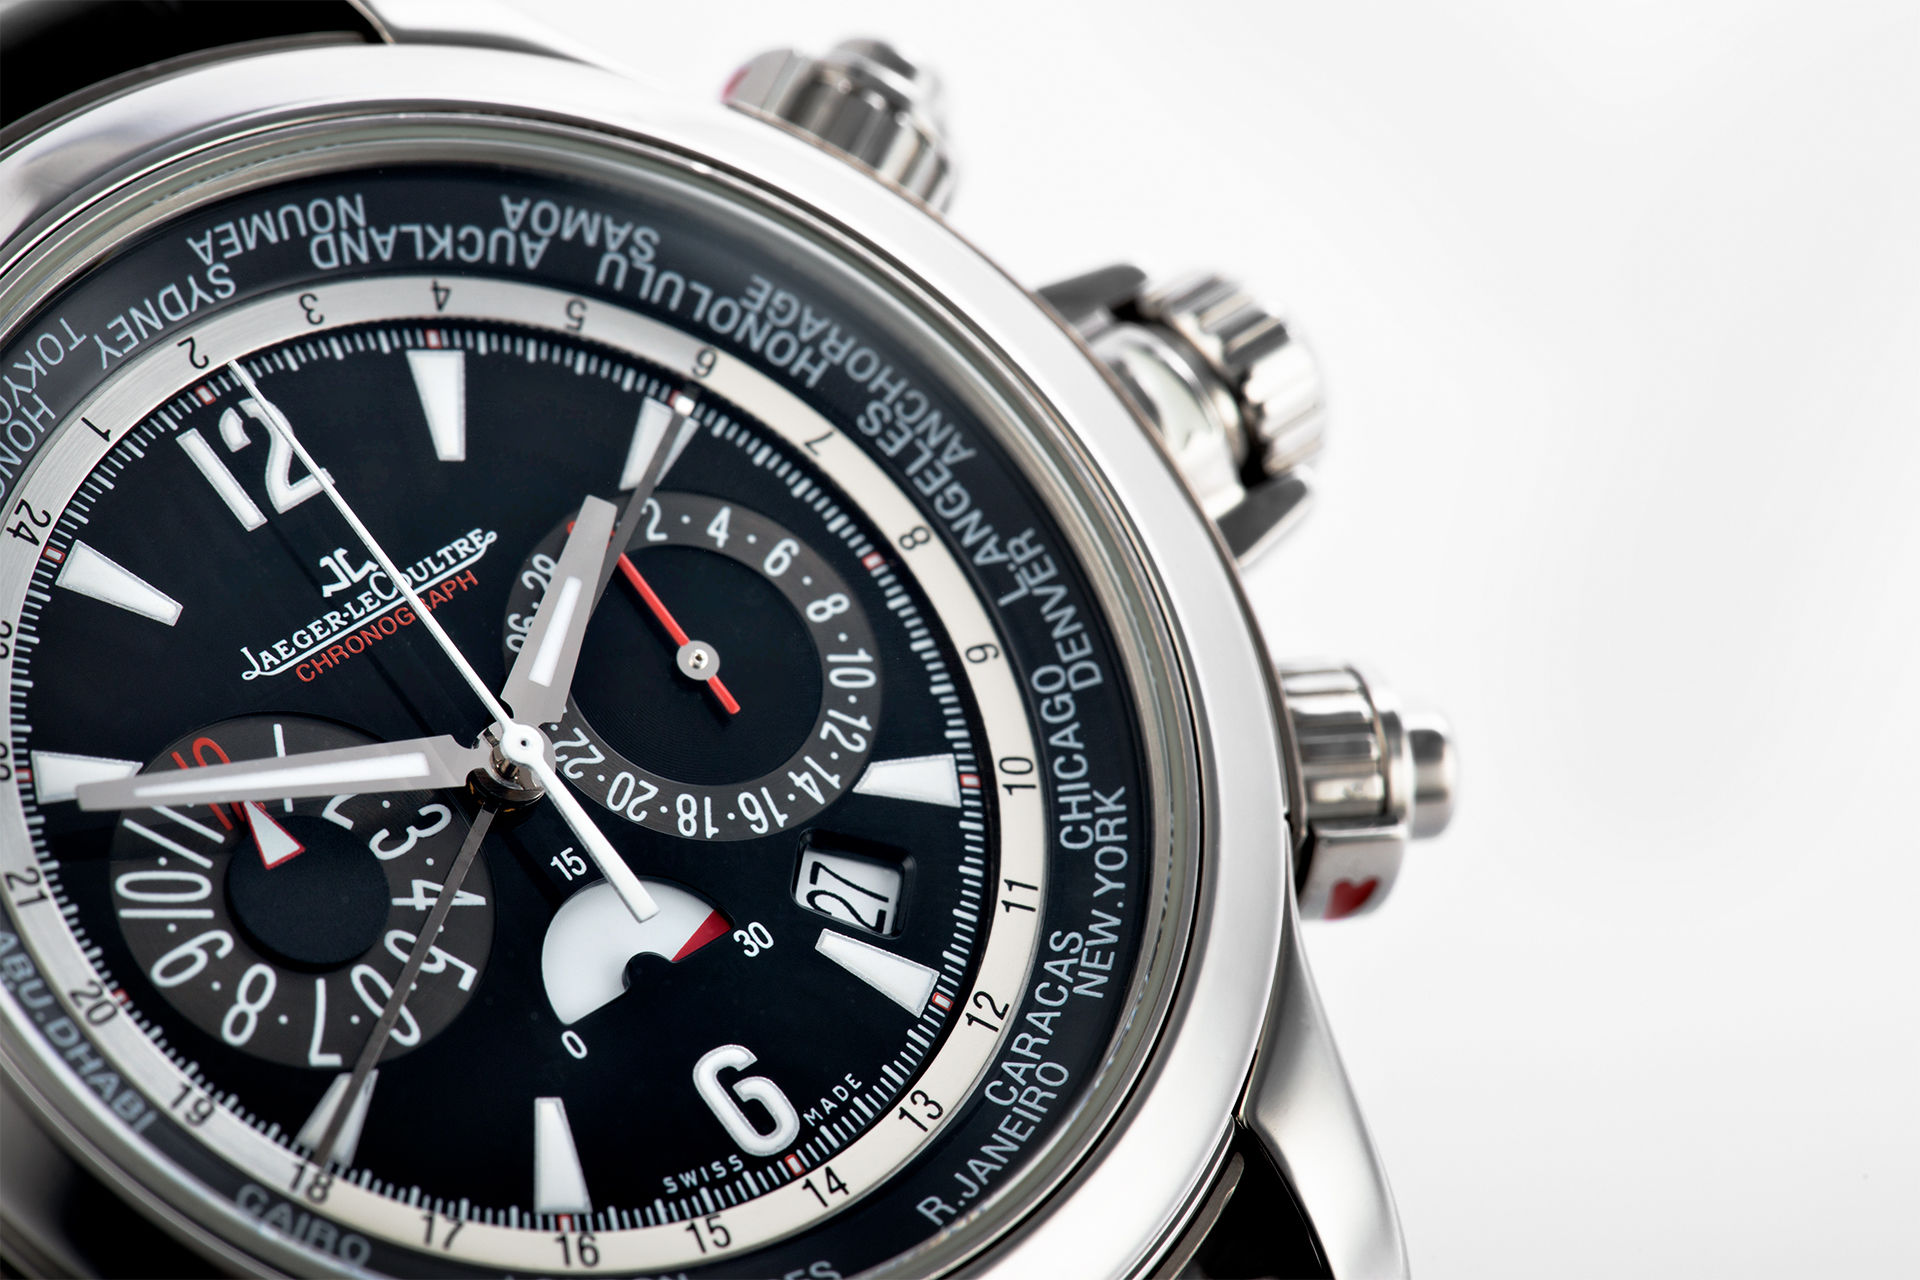 ref 150.8.22 | 'Extreme World Chronograph' | Jaeger-leCoultre Master Compressor